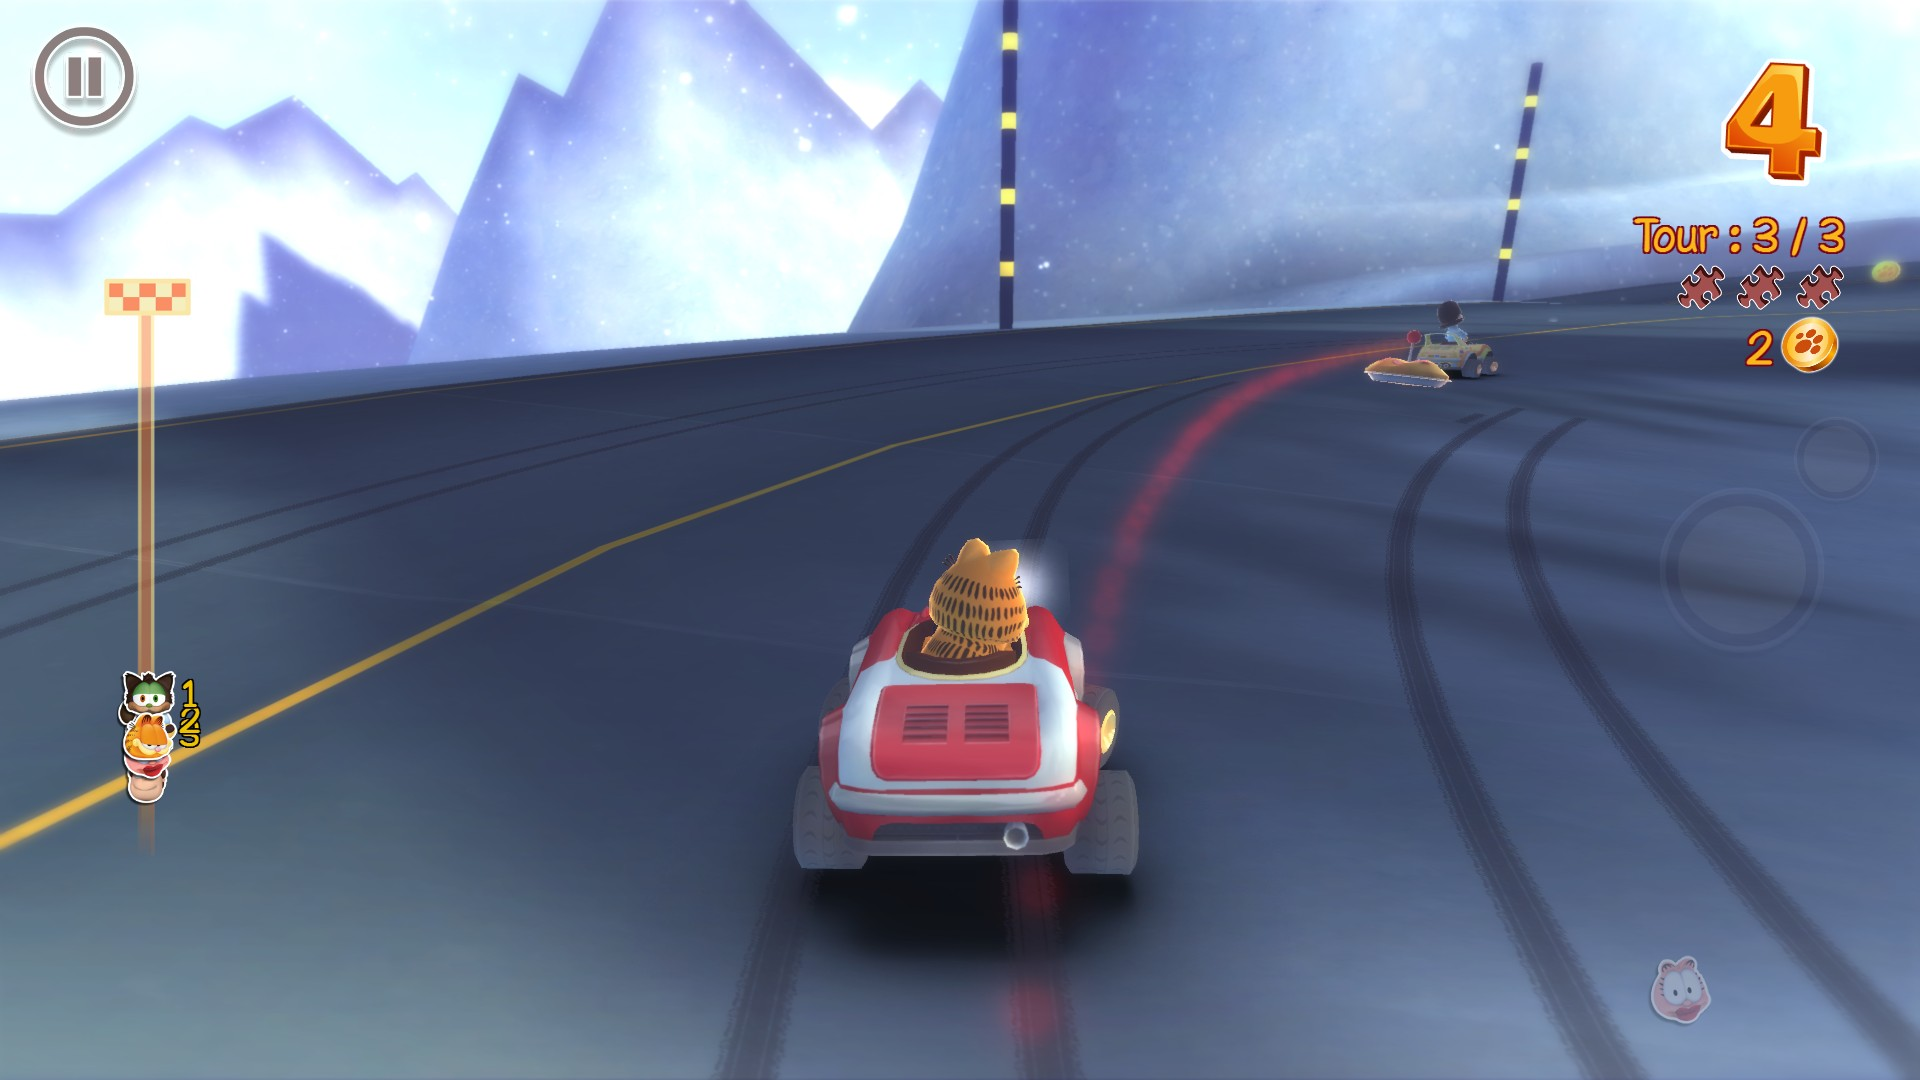 Claim Garfield Kart for free